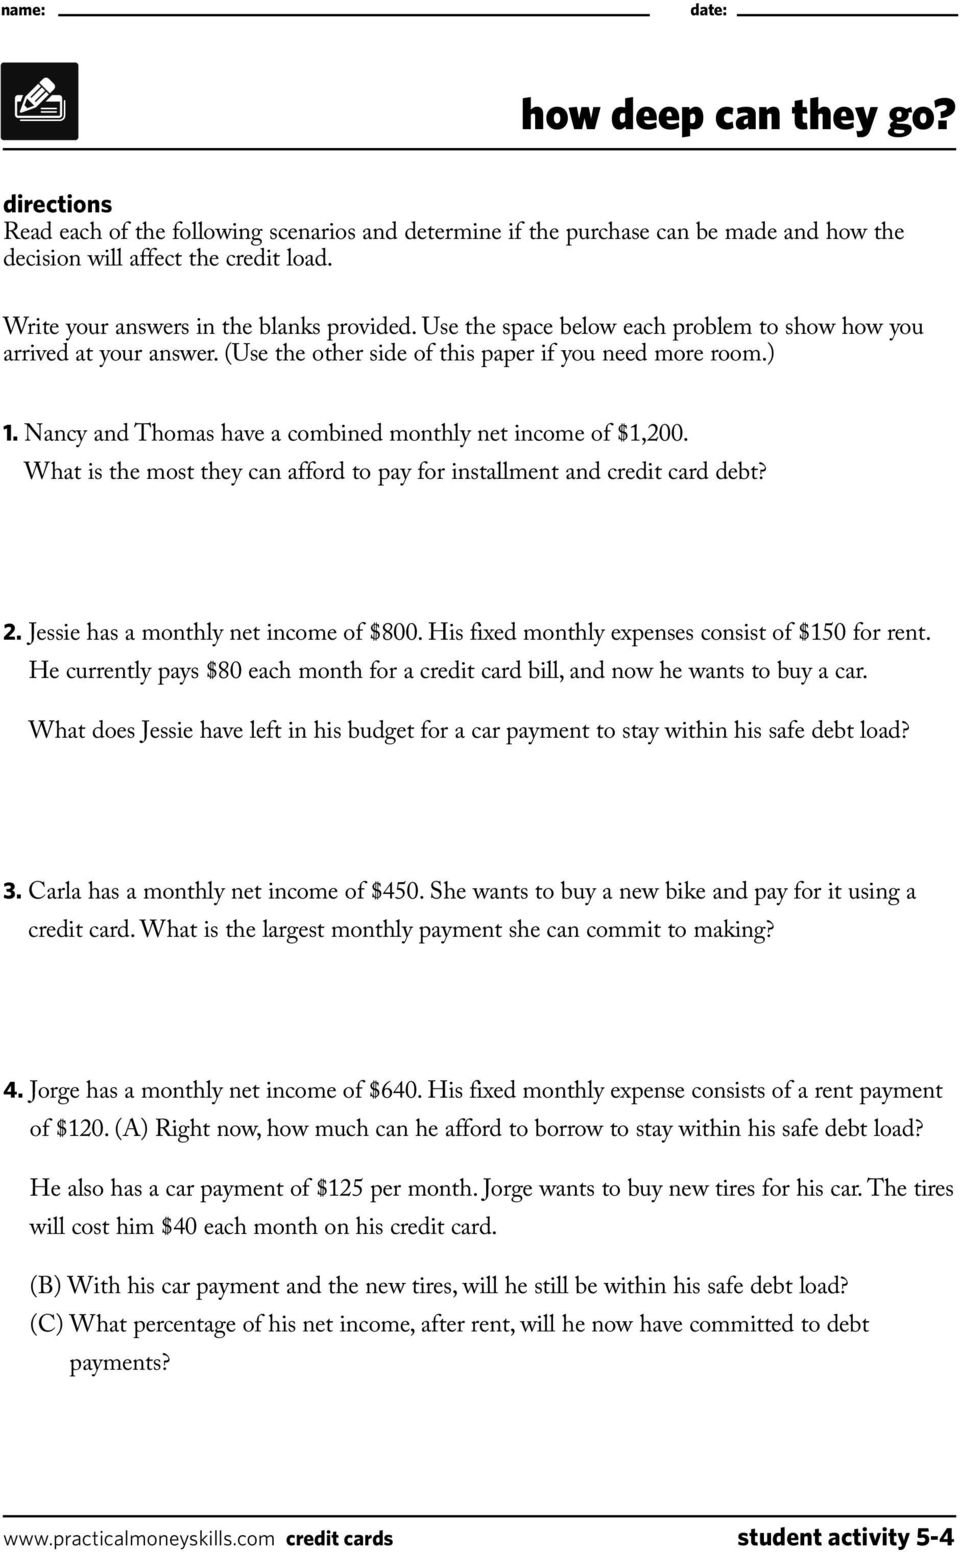 Student Activities Lesson Five Credit Cards 0409  Pdf Also Shopping For Credit Worksheet Answer Key